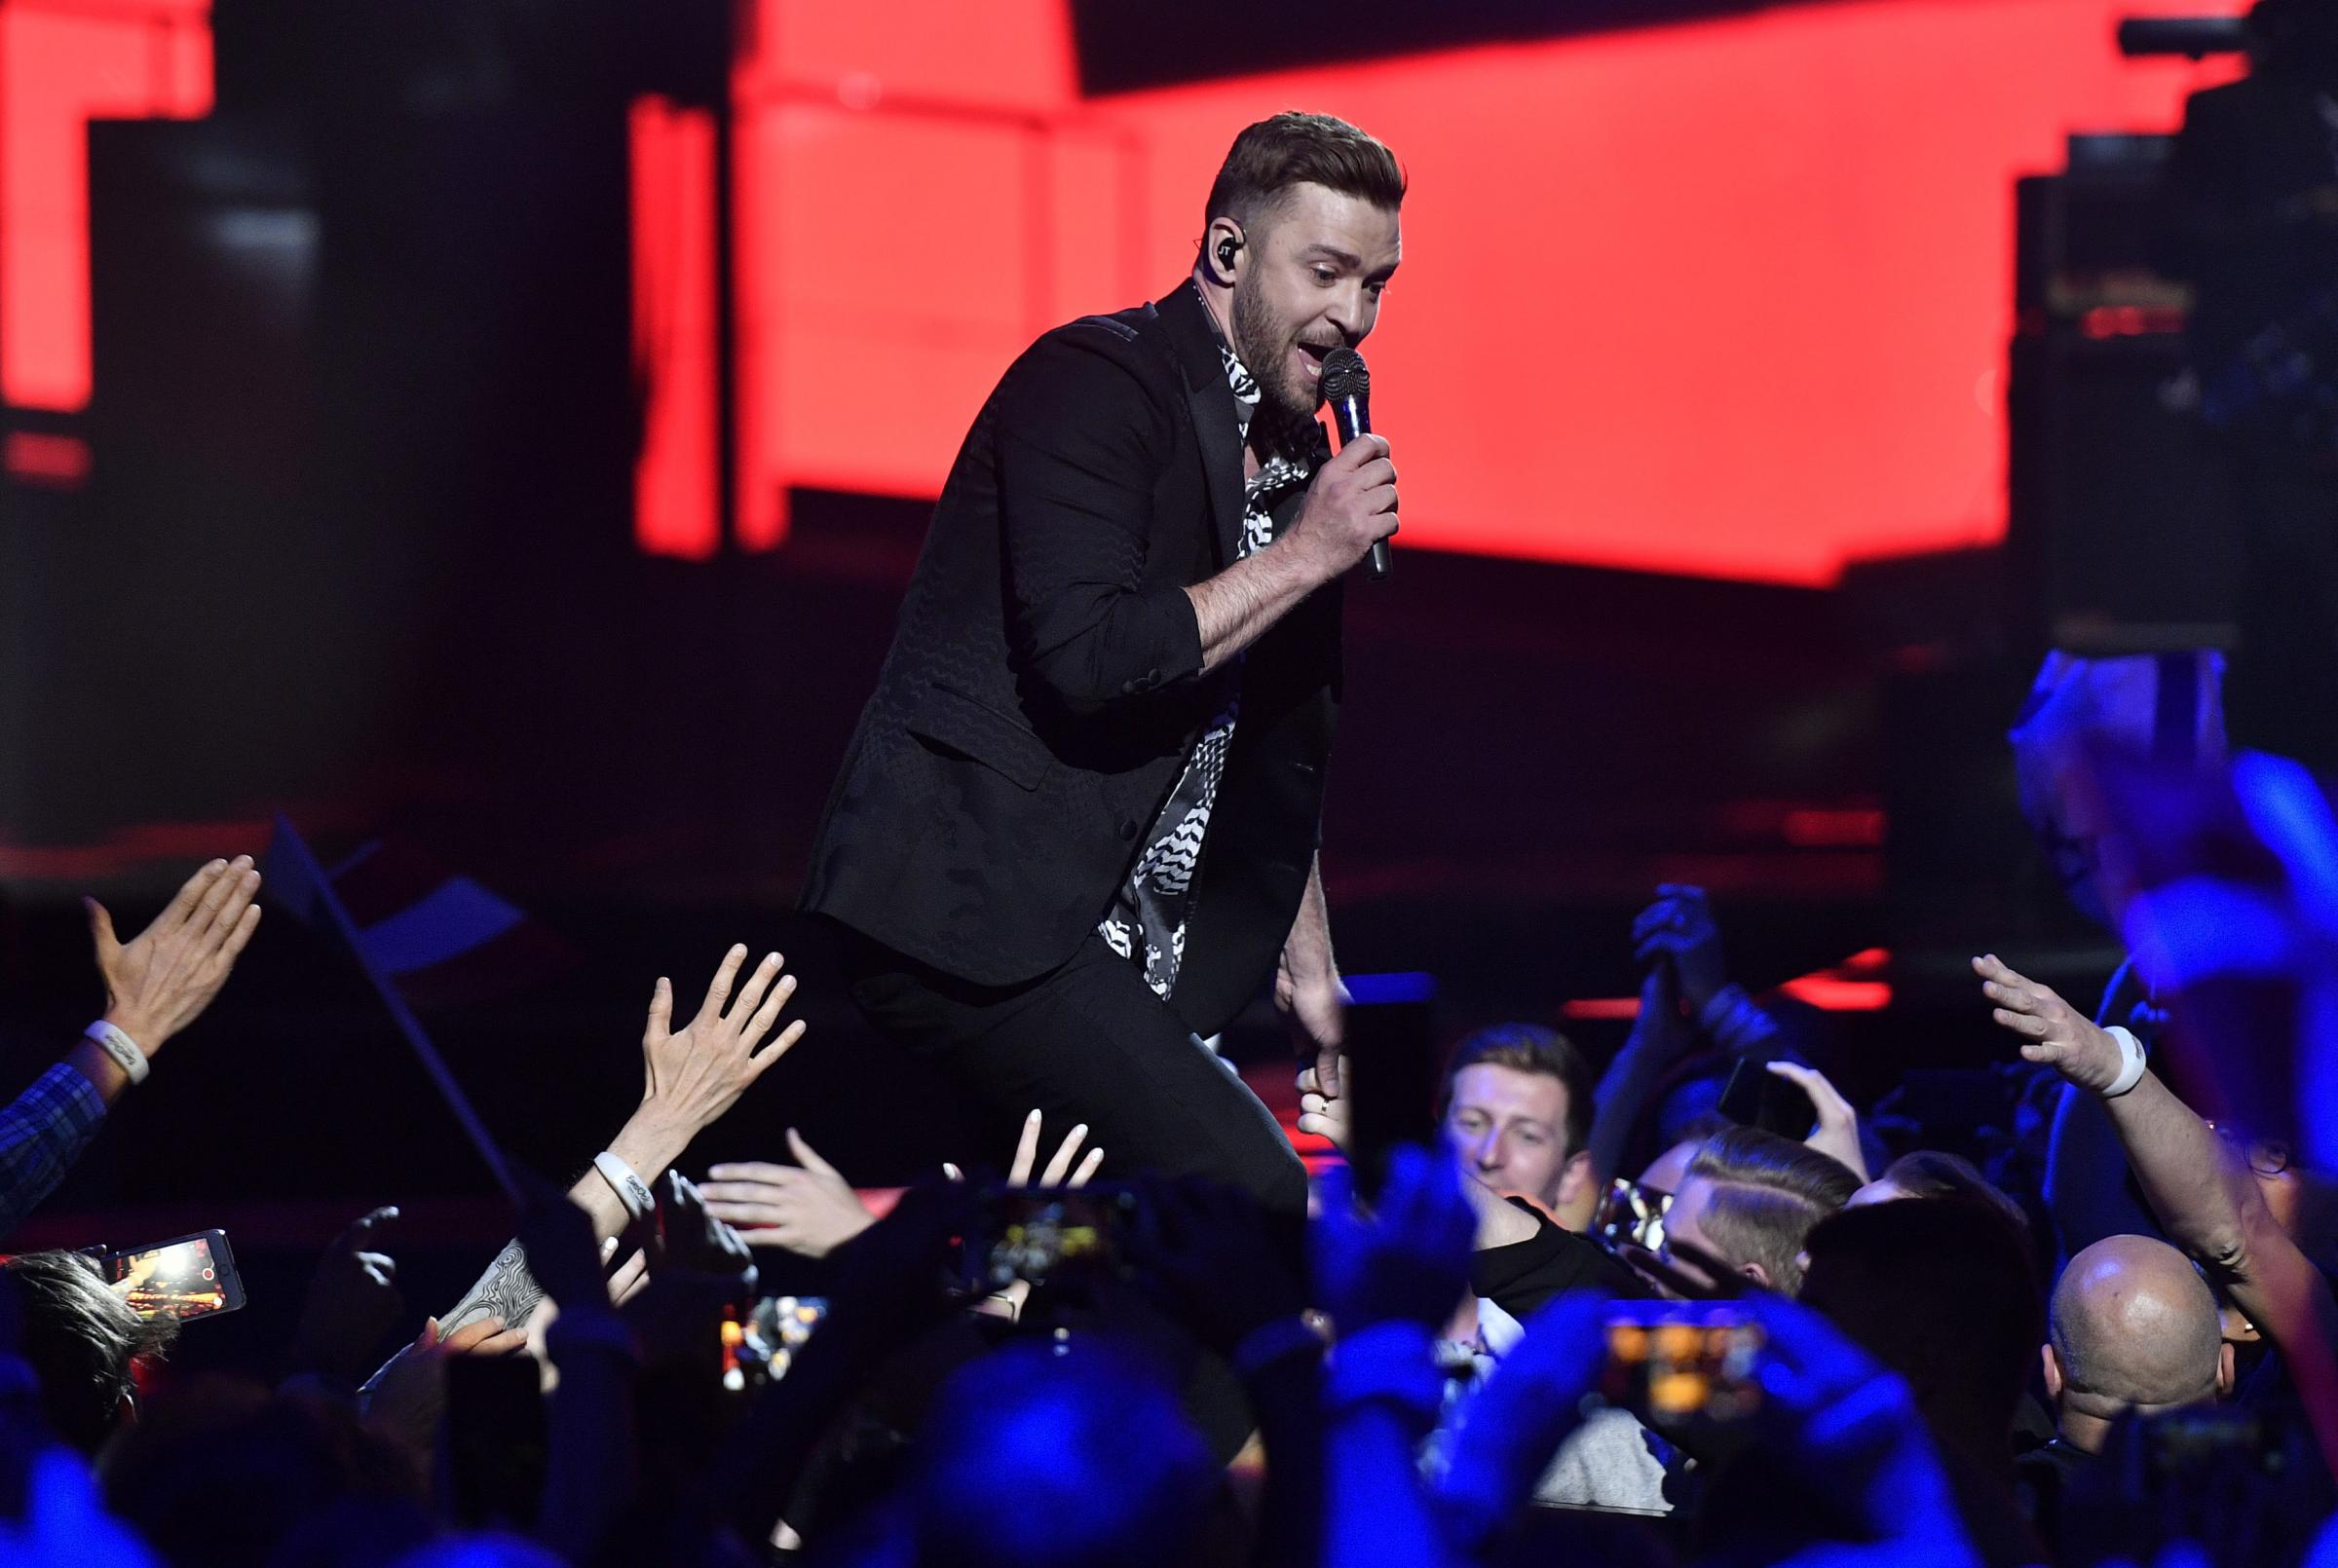 Justin Timberlake to play Glasgow's SSE Hydro after Super Bowl performance